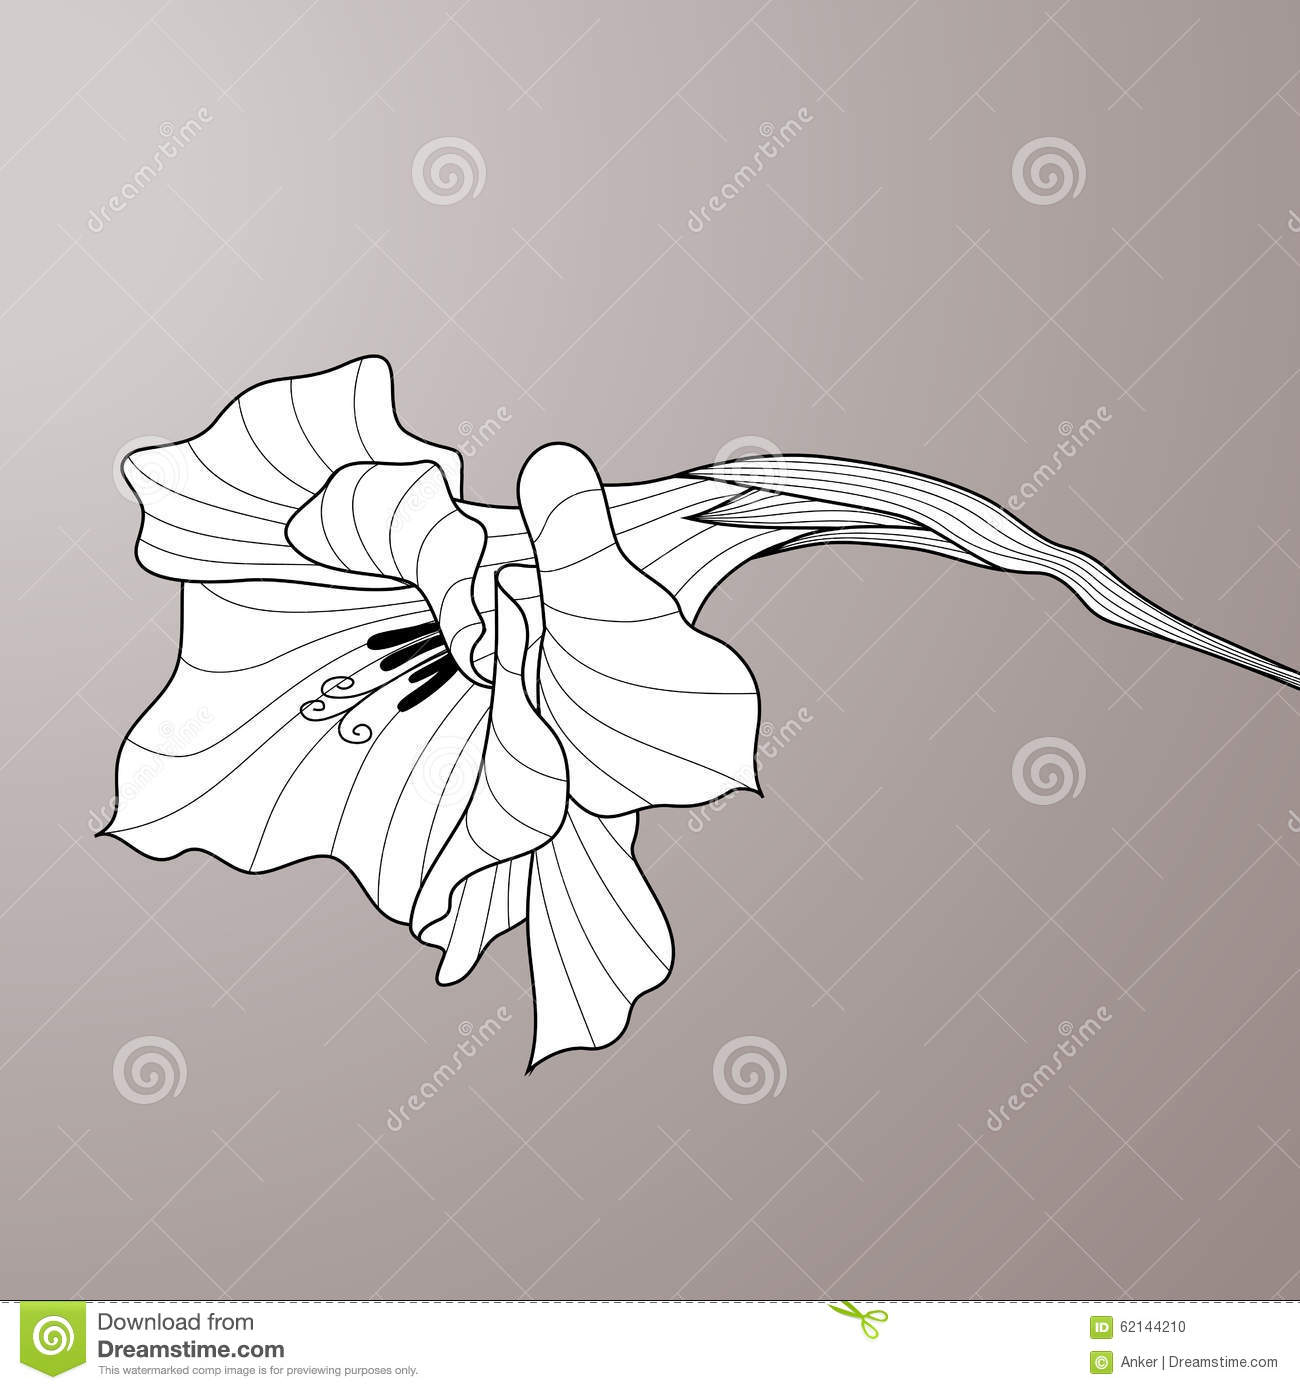 Contour Line Drawing Plant : Flower gladiolus contour graphic art stock vector image